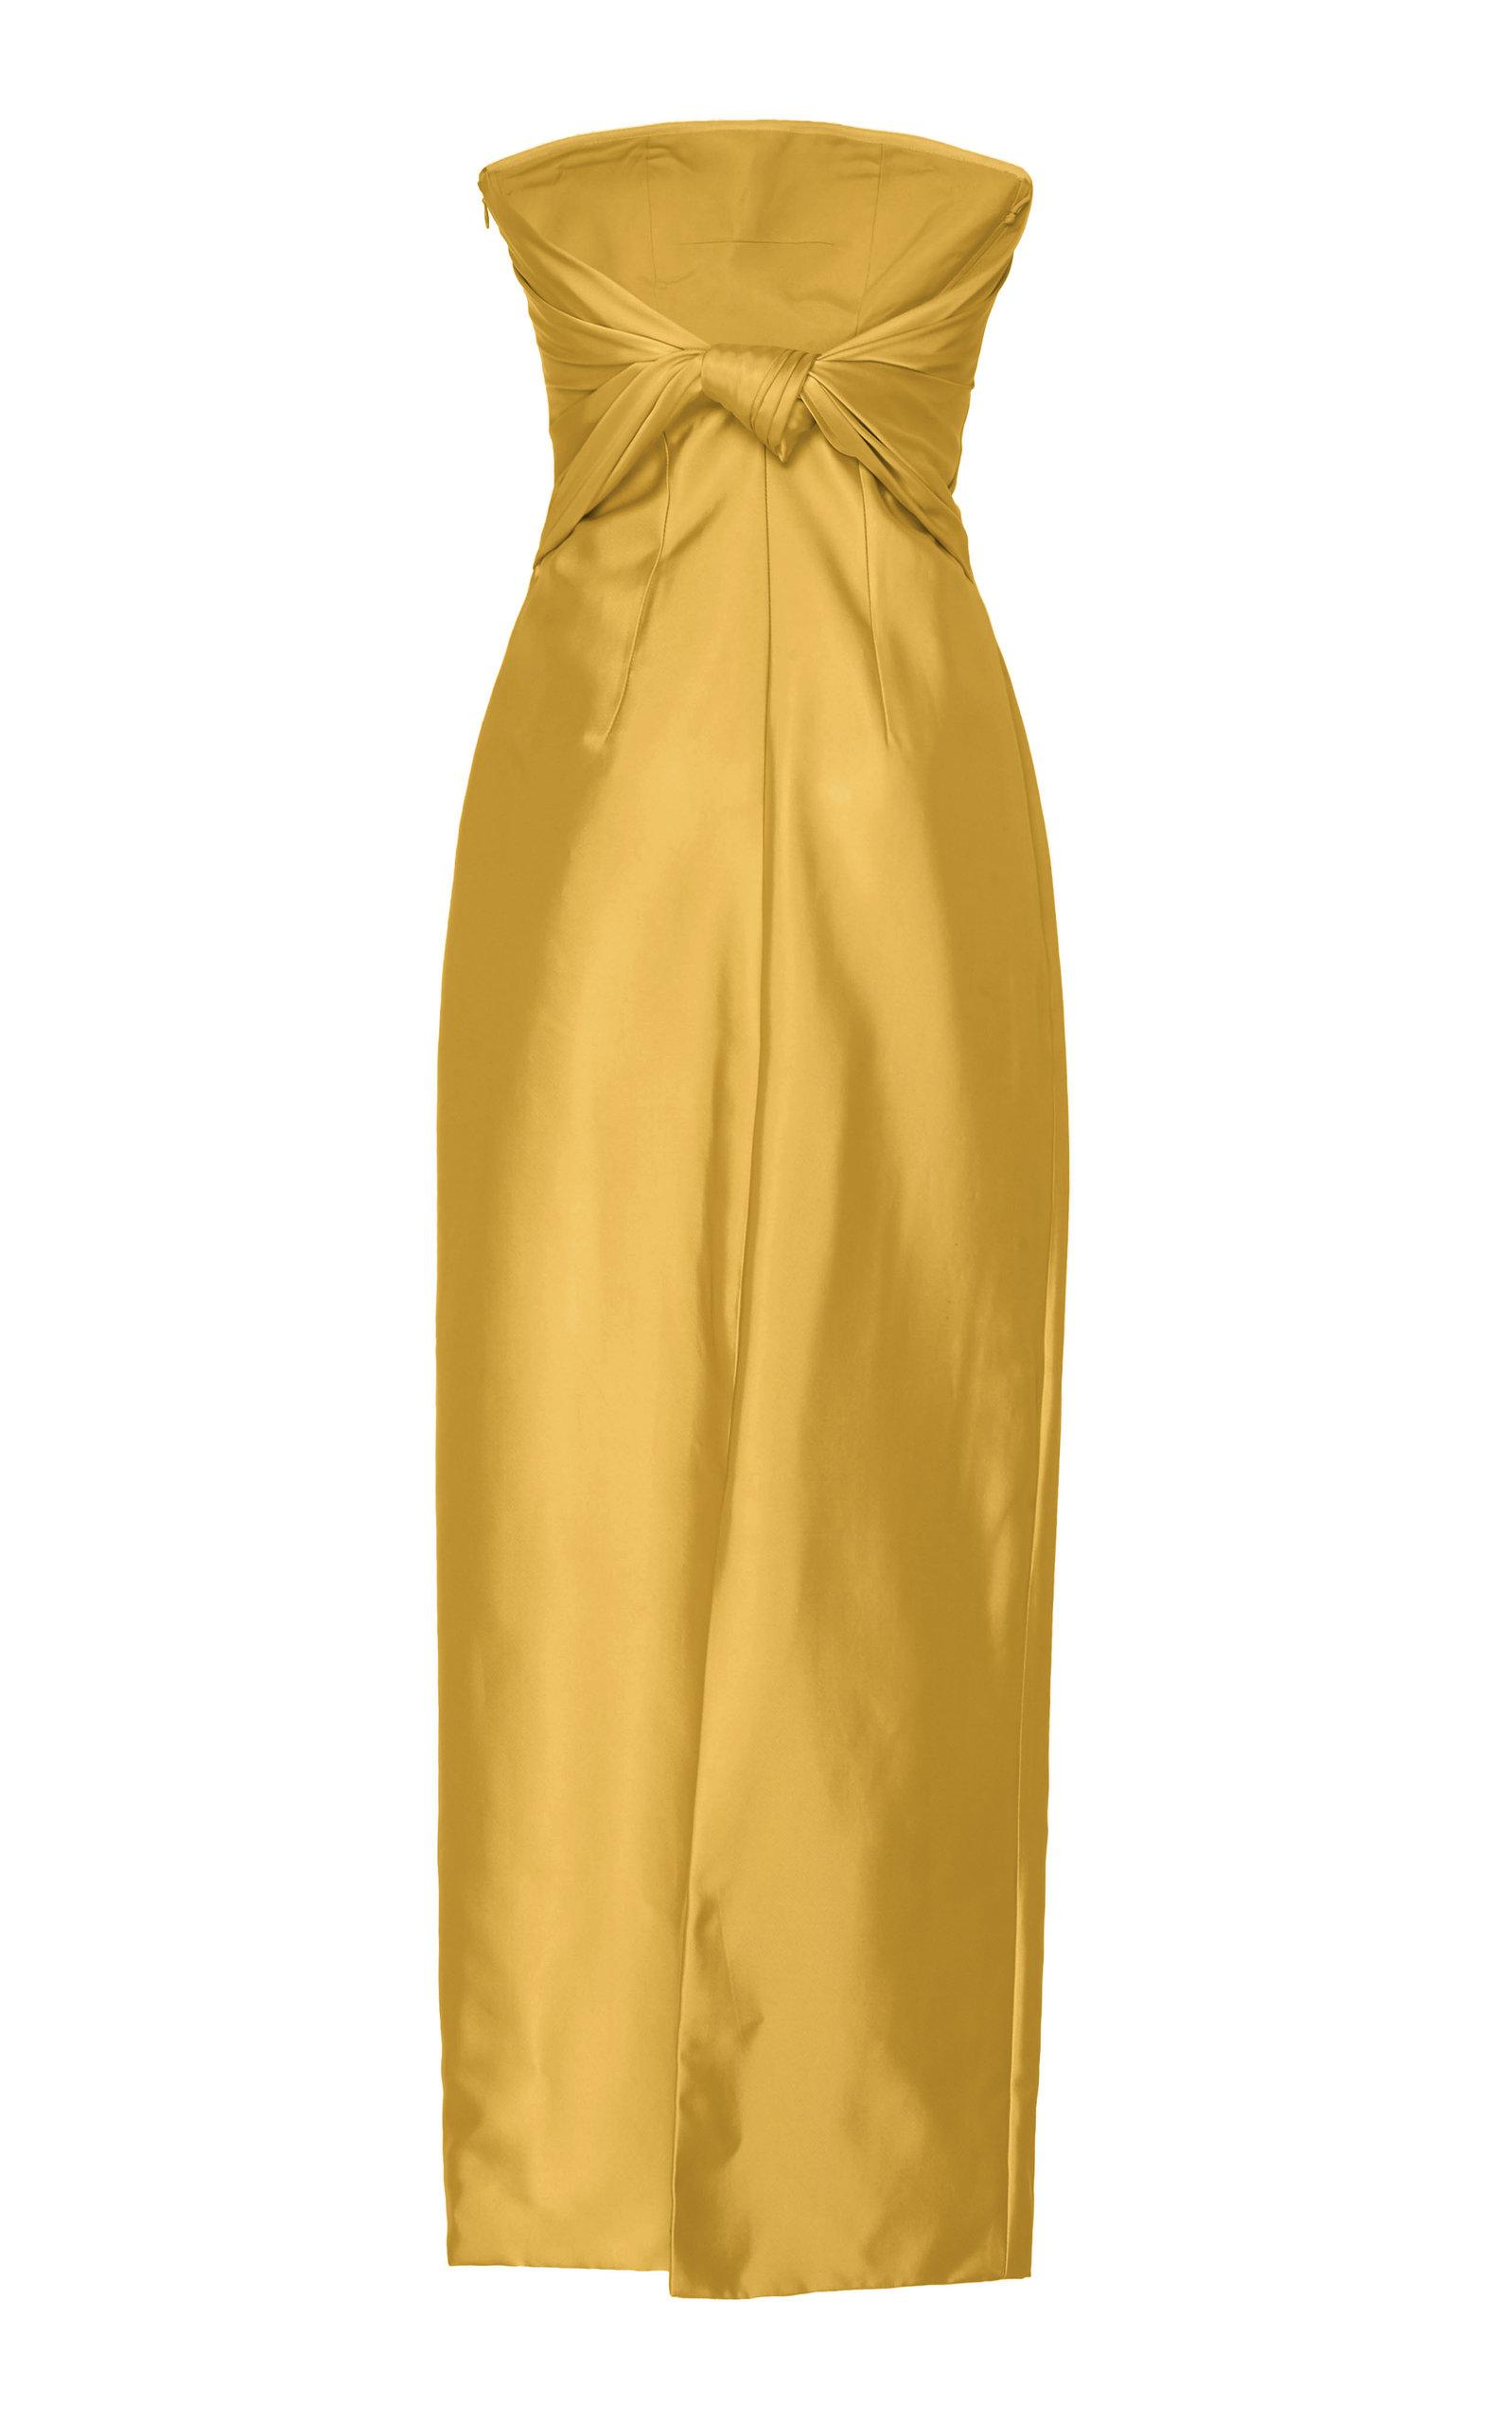 979ede245f1d2 Brandon Maxwell Strapless Knotted-back Satin Cocktail Dress in ...